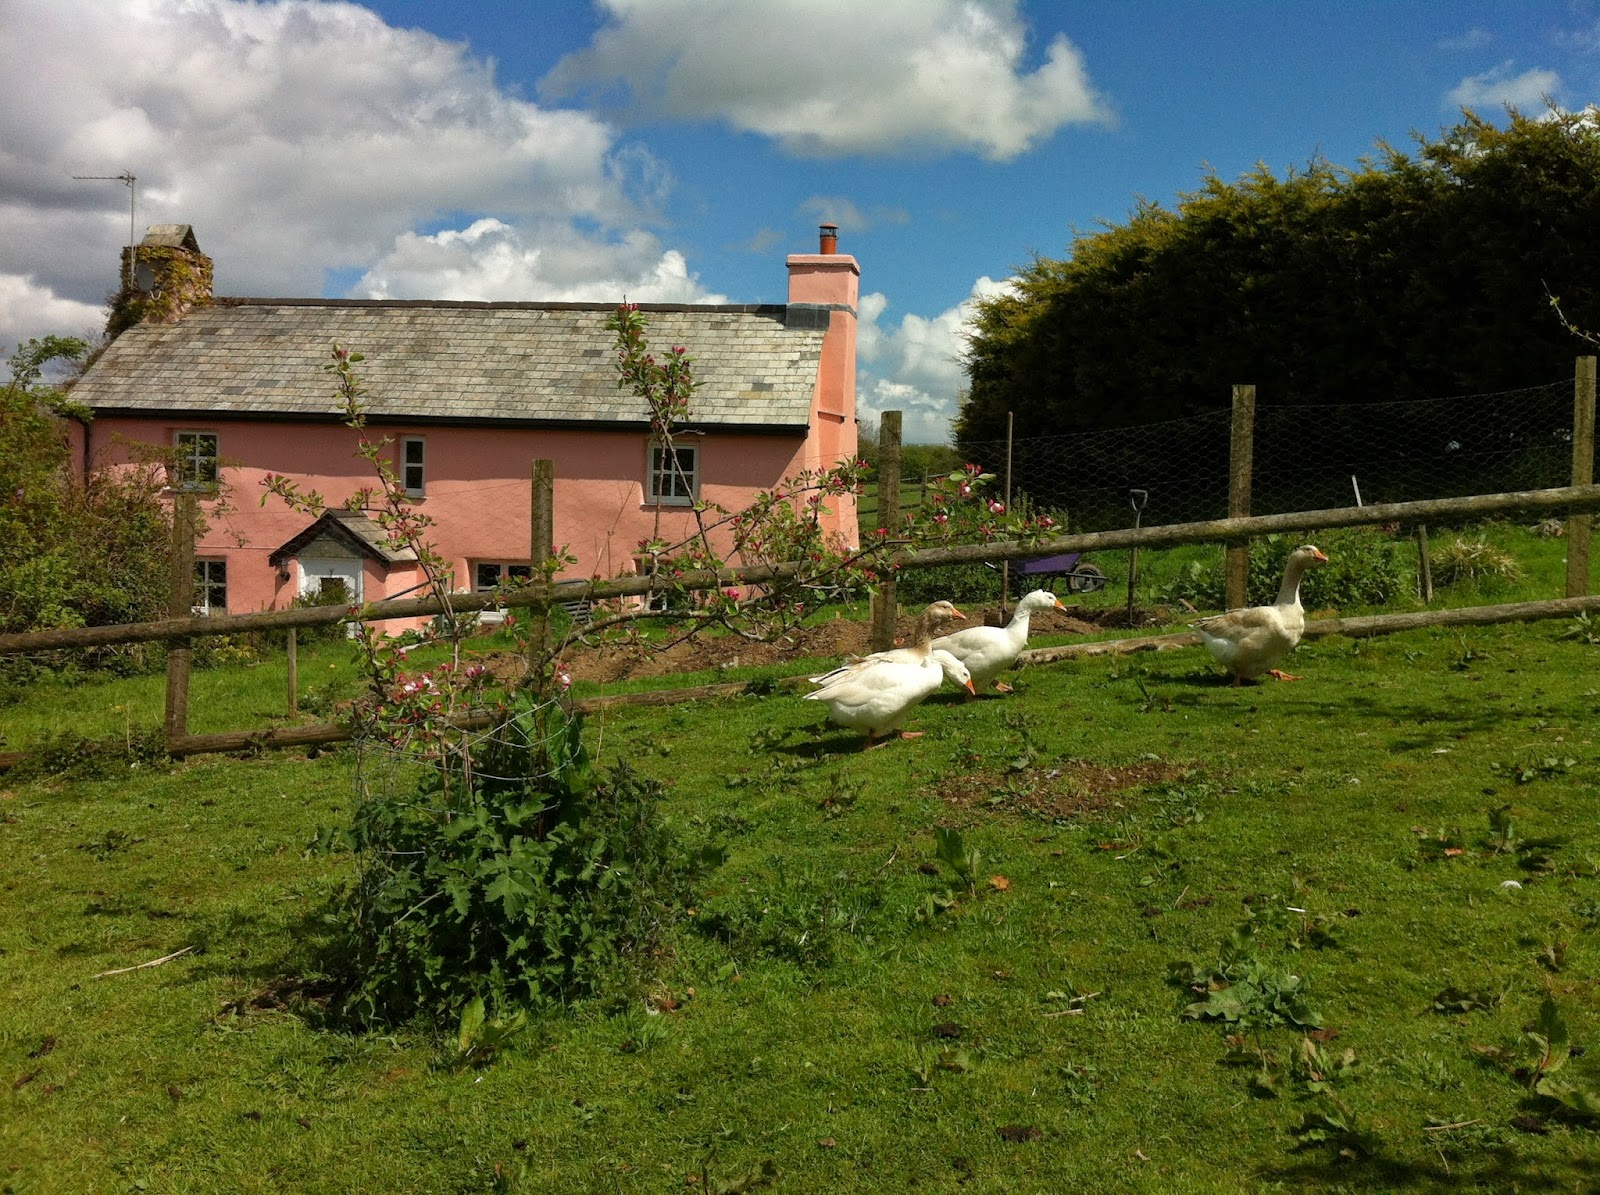 Tomaland Farm from the orchard with geese